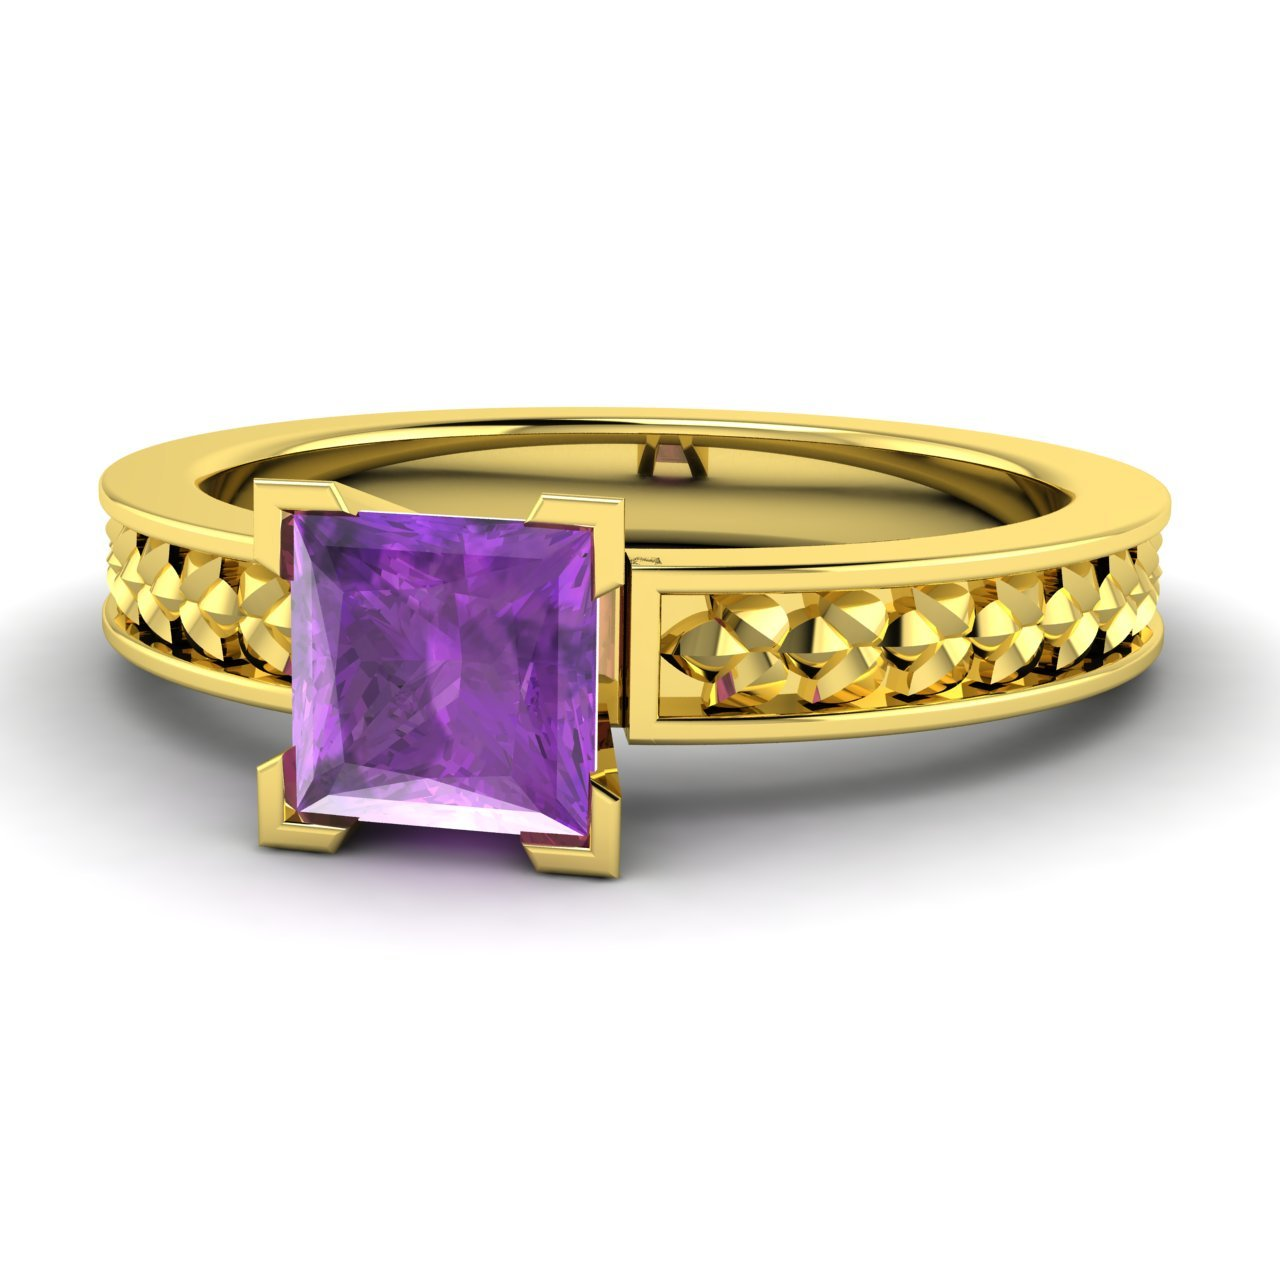 0 49 ct princess cut amethyst solitaire ring in